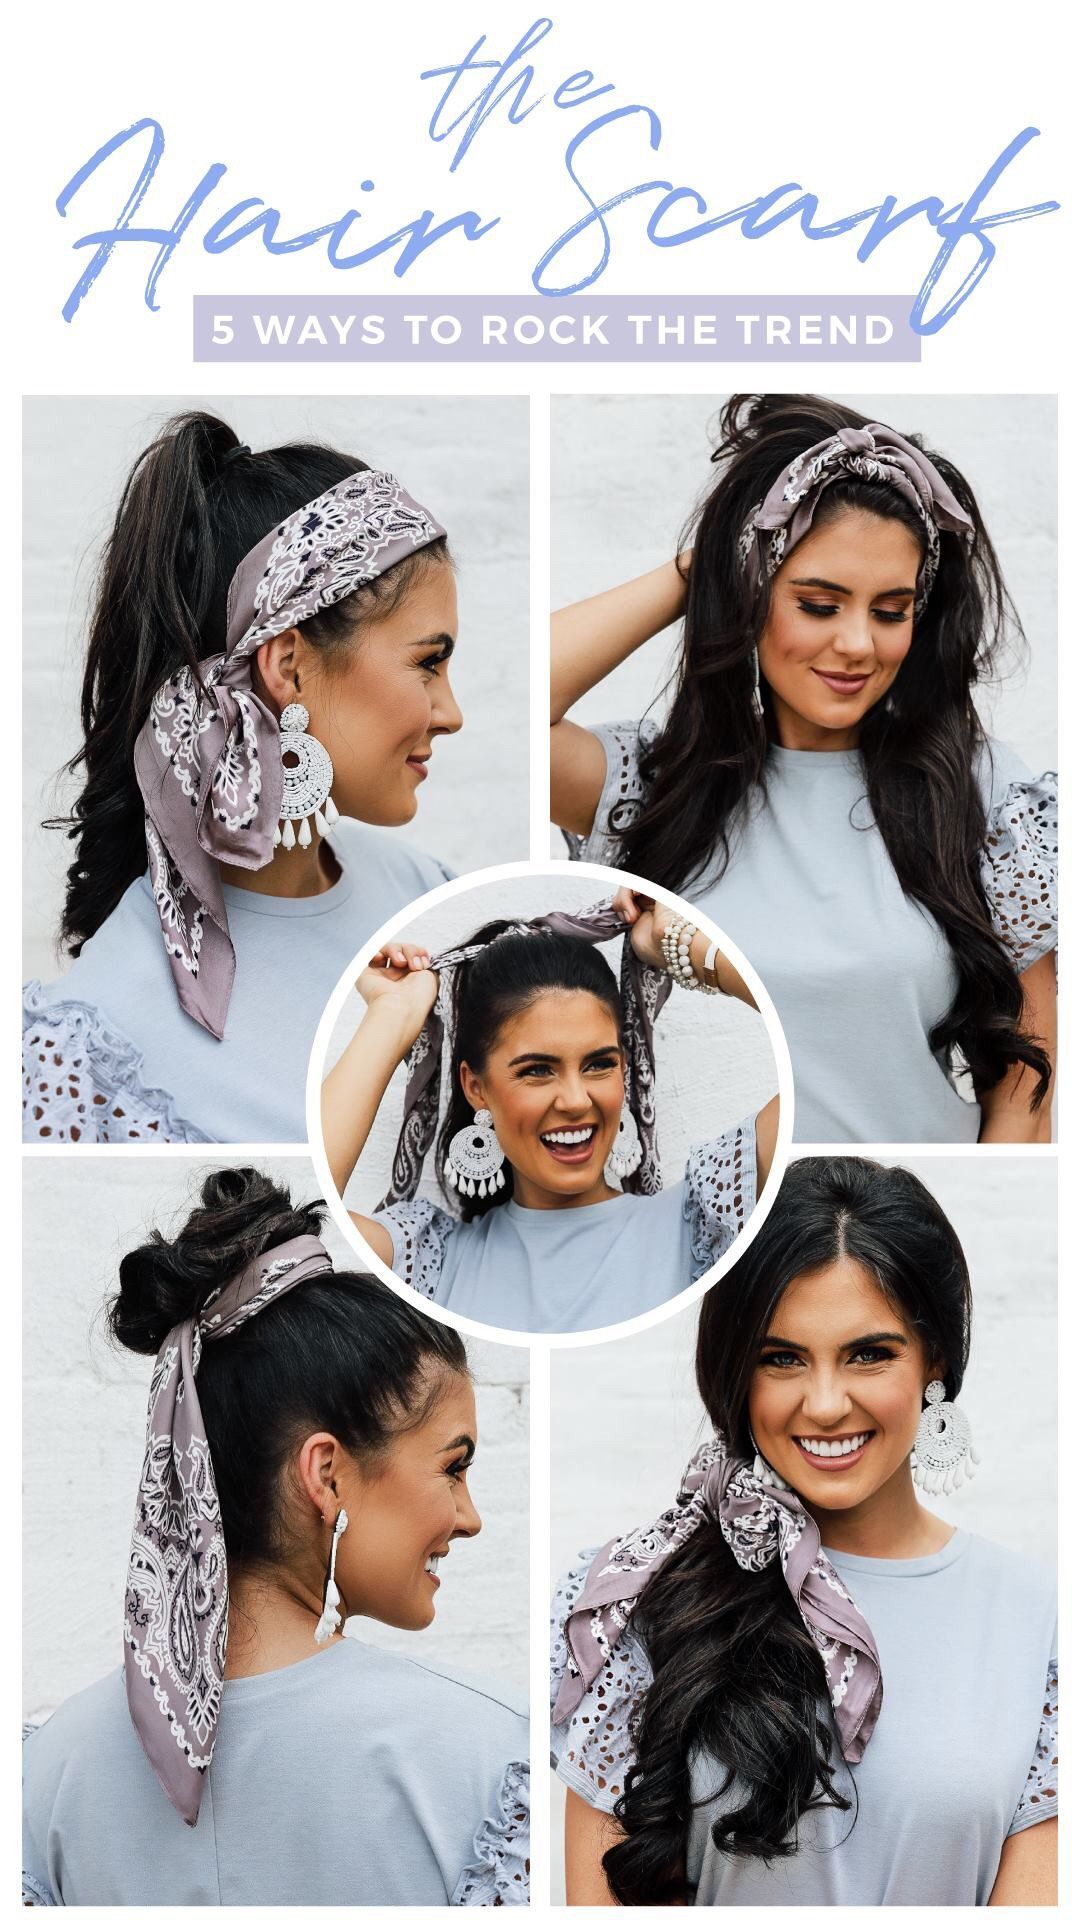 How To Rock A Hair Scarf 5 Ways!